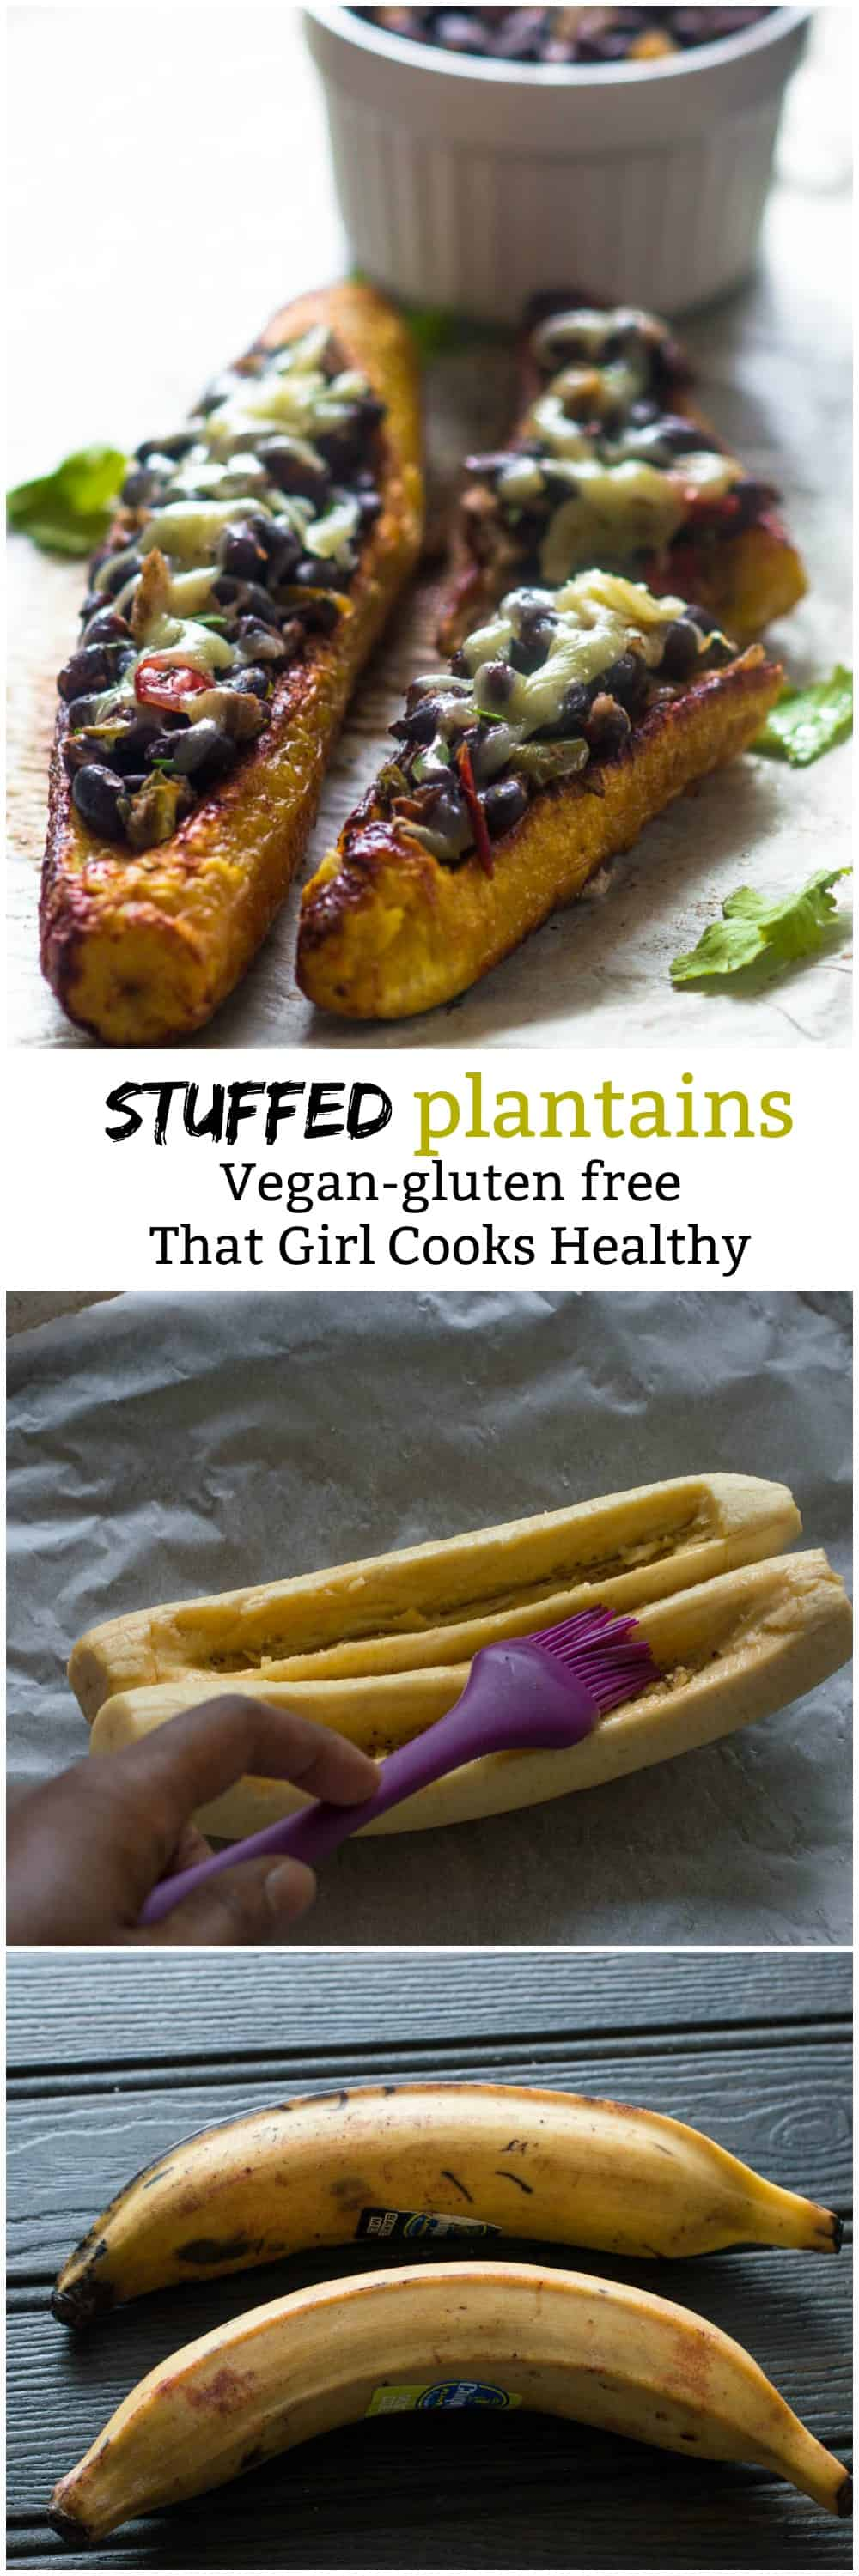 stuffed plantains